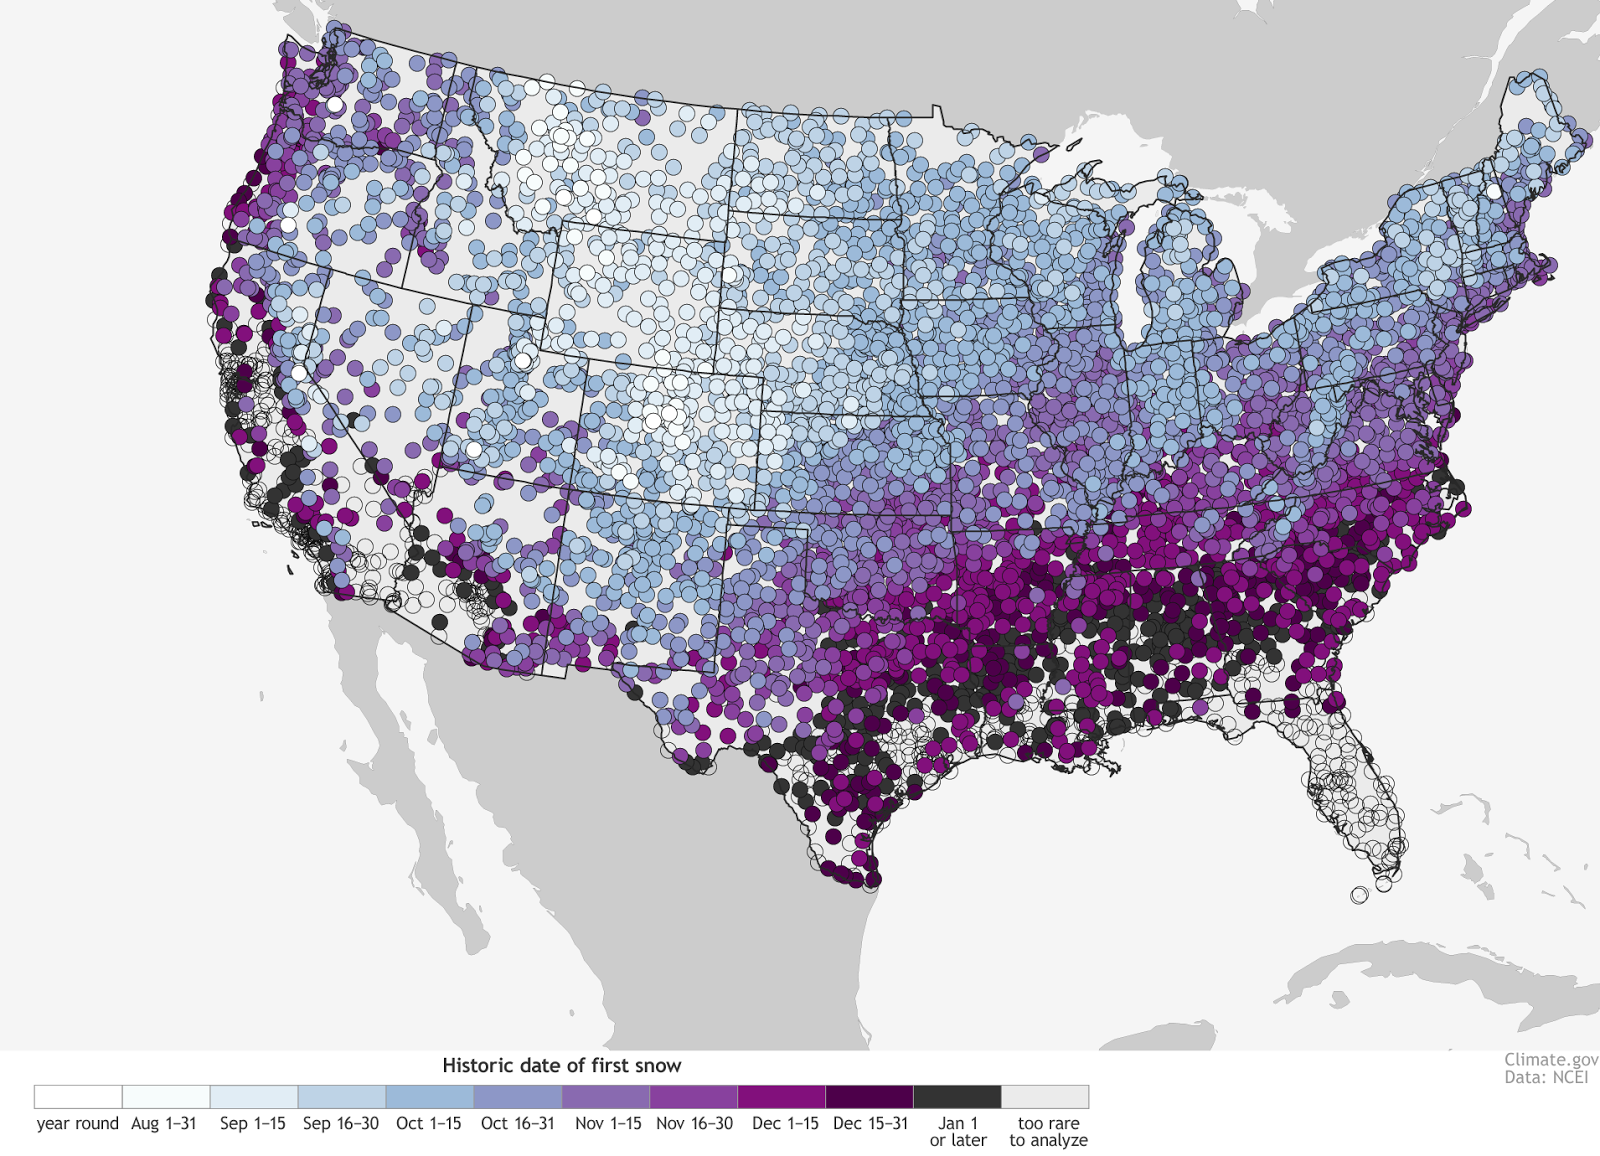 The U.S. First Snow Map